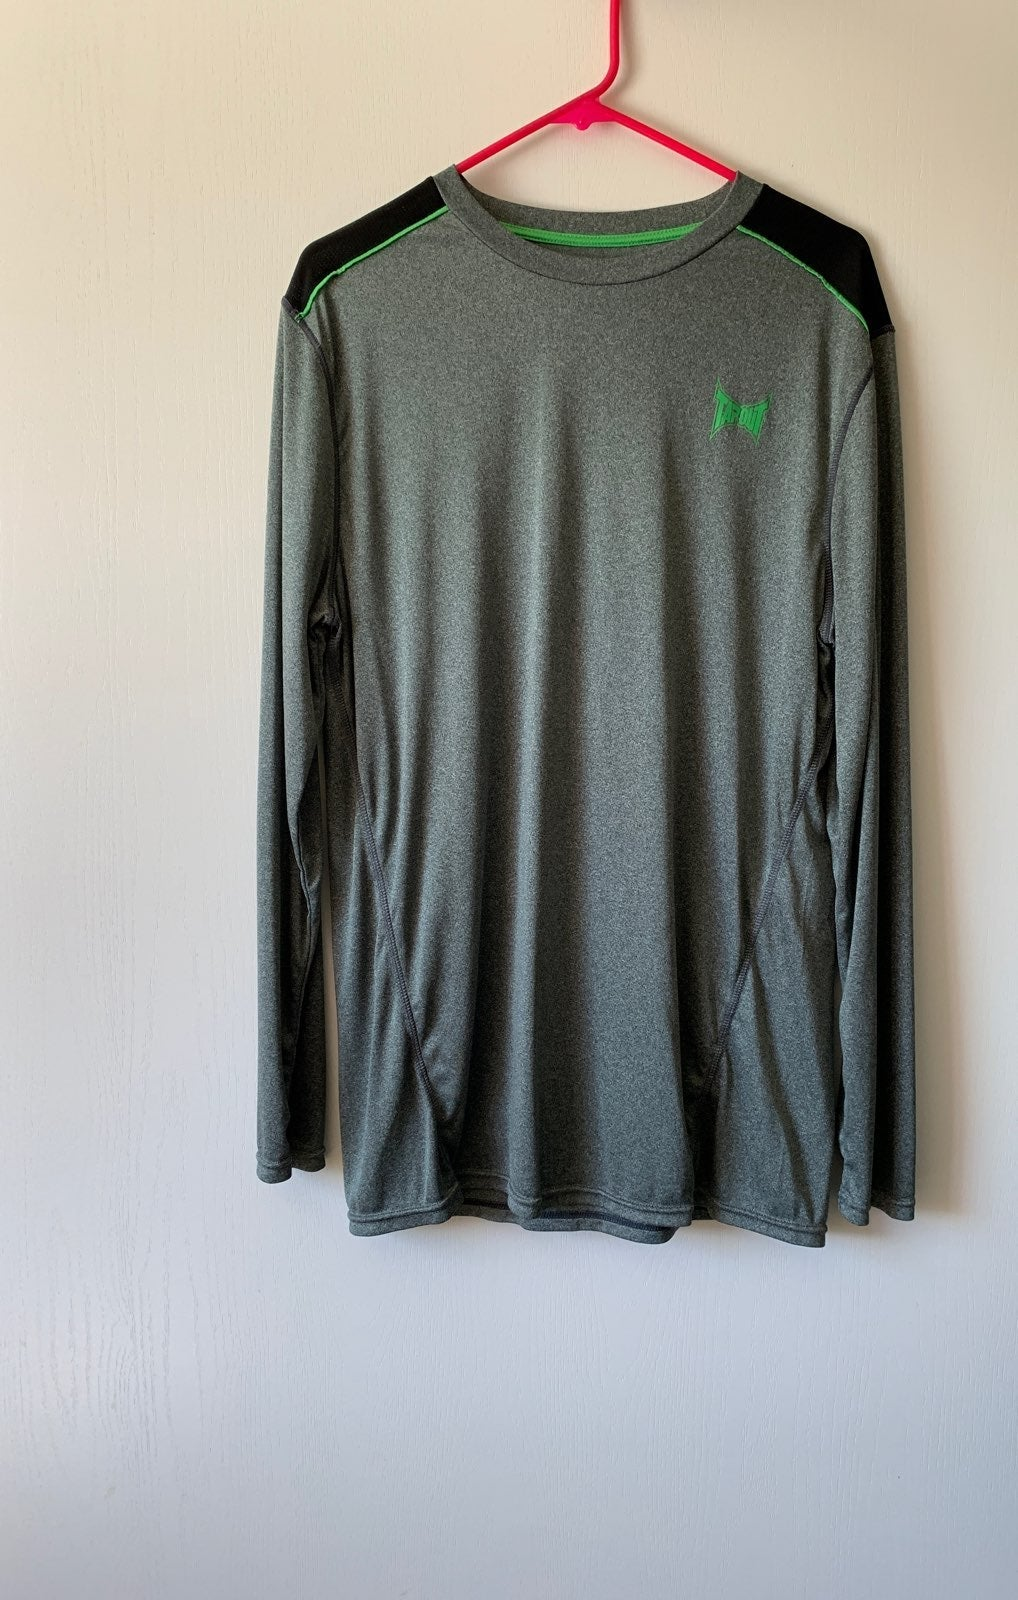 TAPOUT Long Sleeve DRI FIT Men's XL